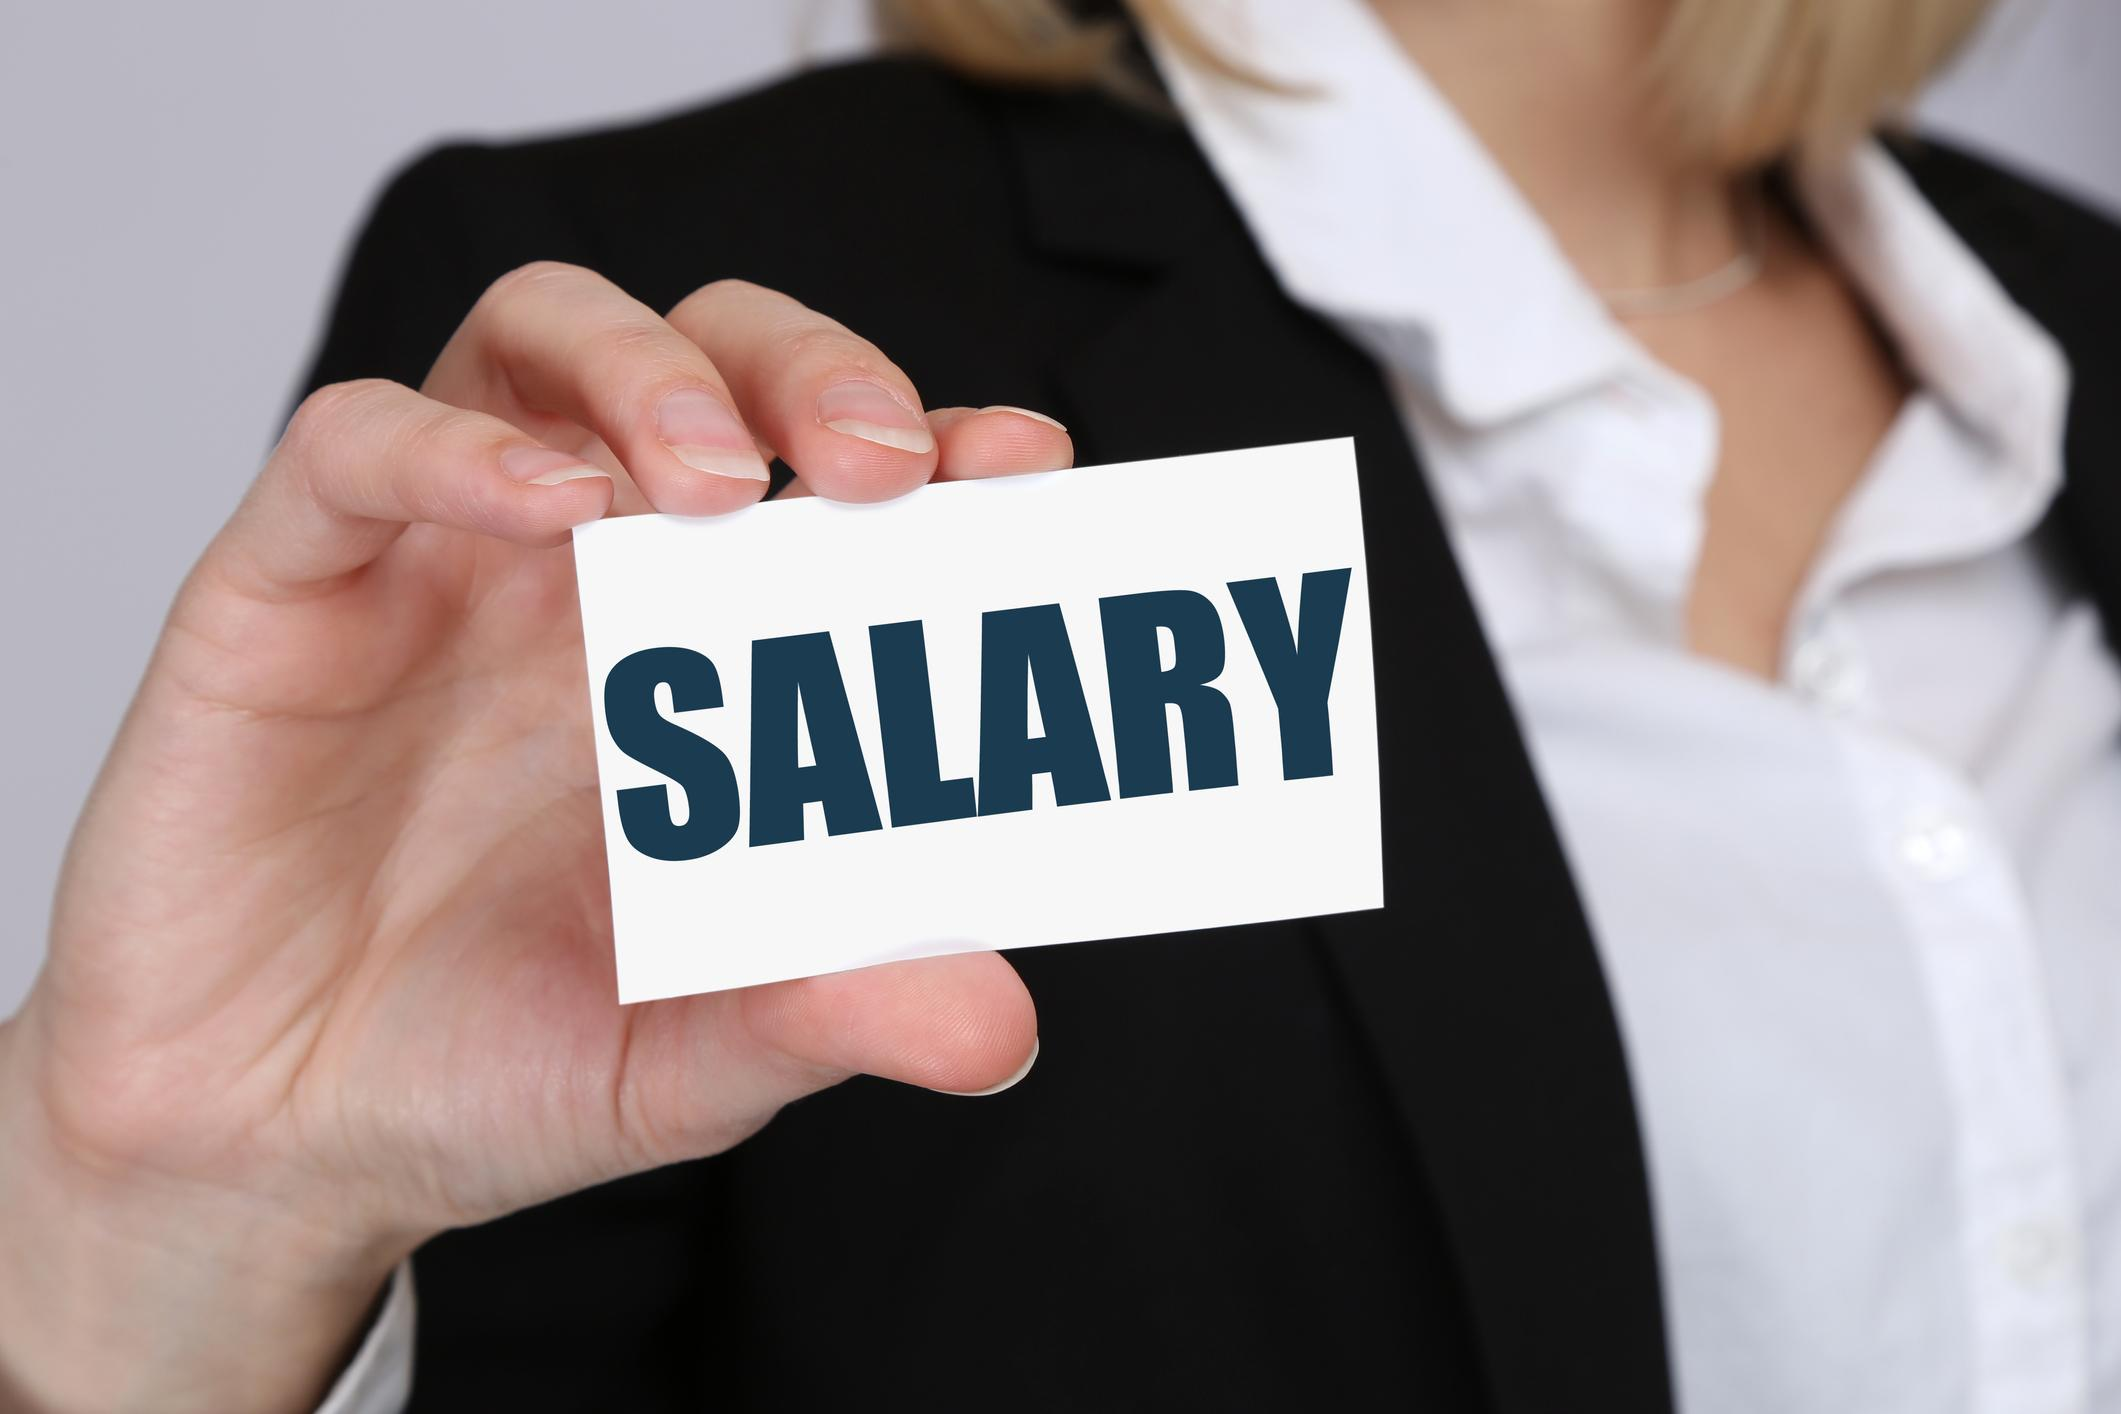 At what stage of the hiring process can you talk about pay?